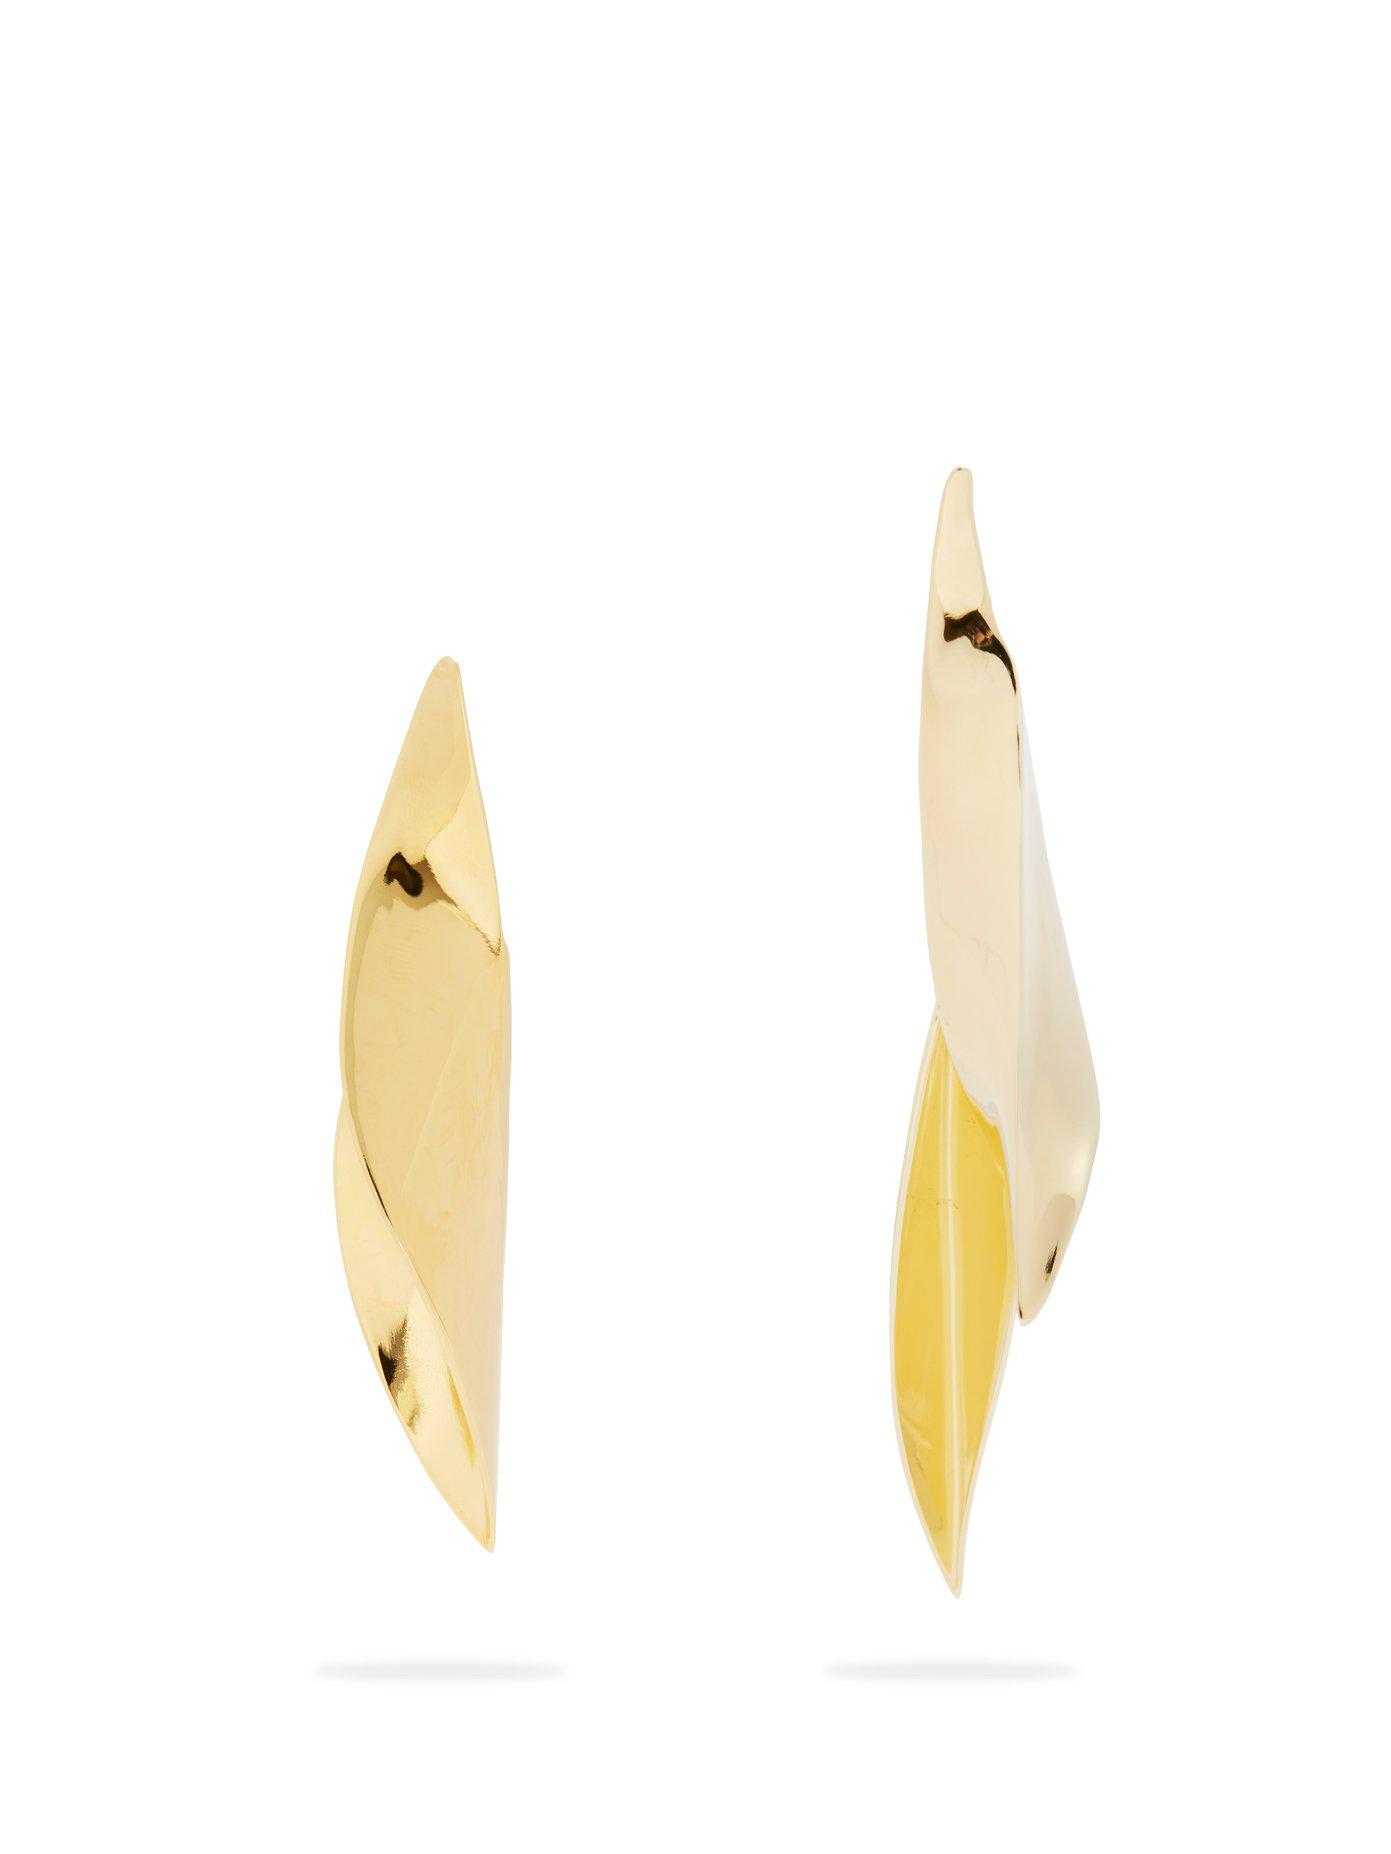 Ryan Storer Sansevieria gold-plated mismatched earrings oYmkH4pI9